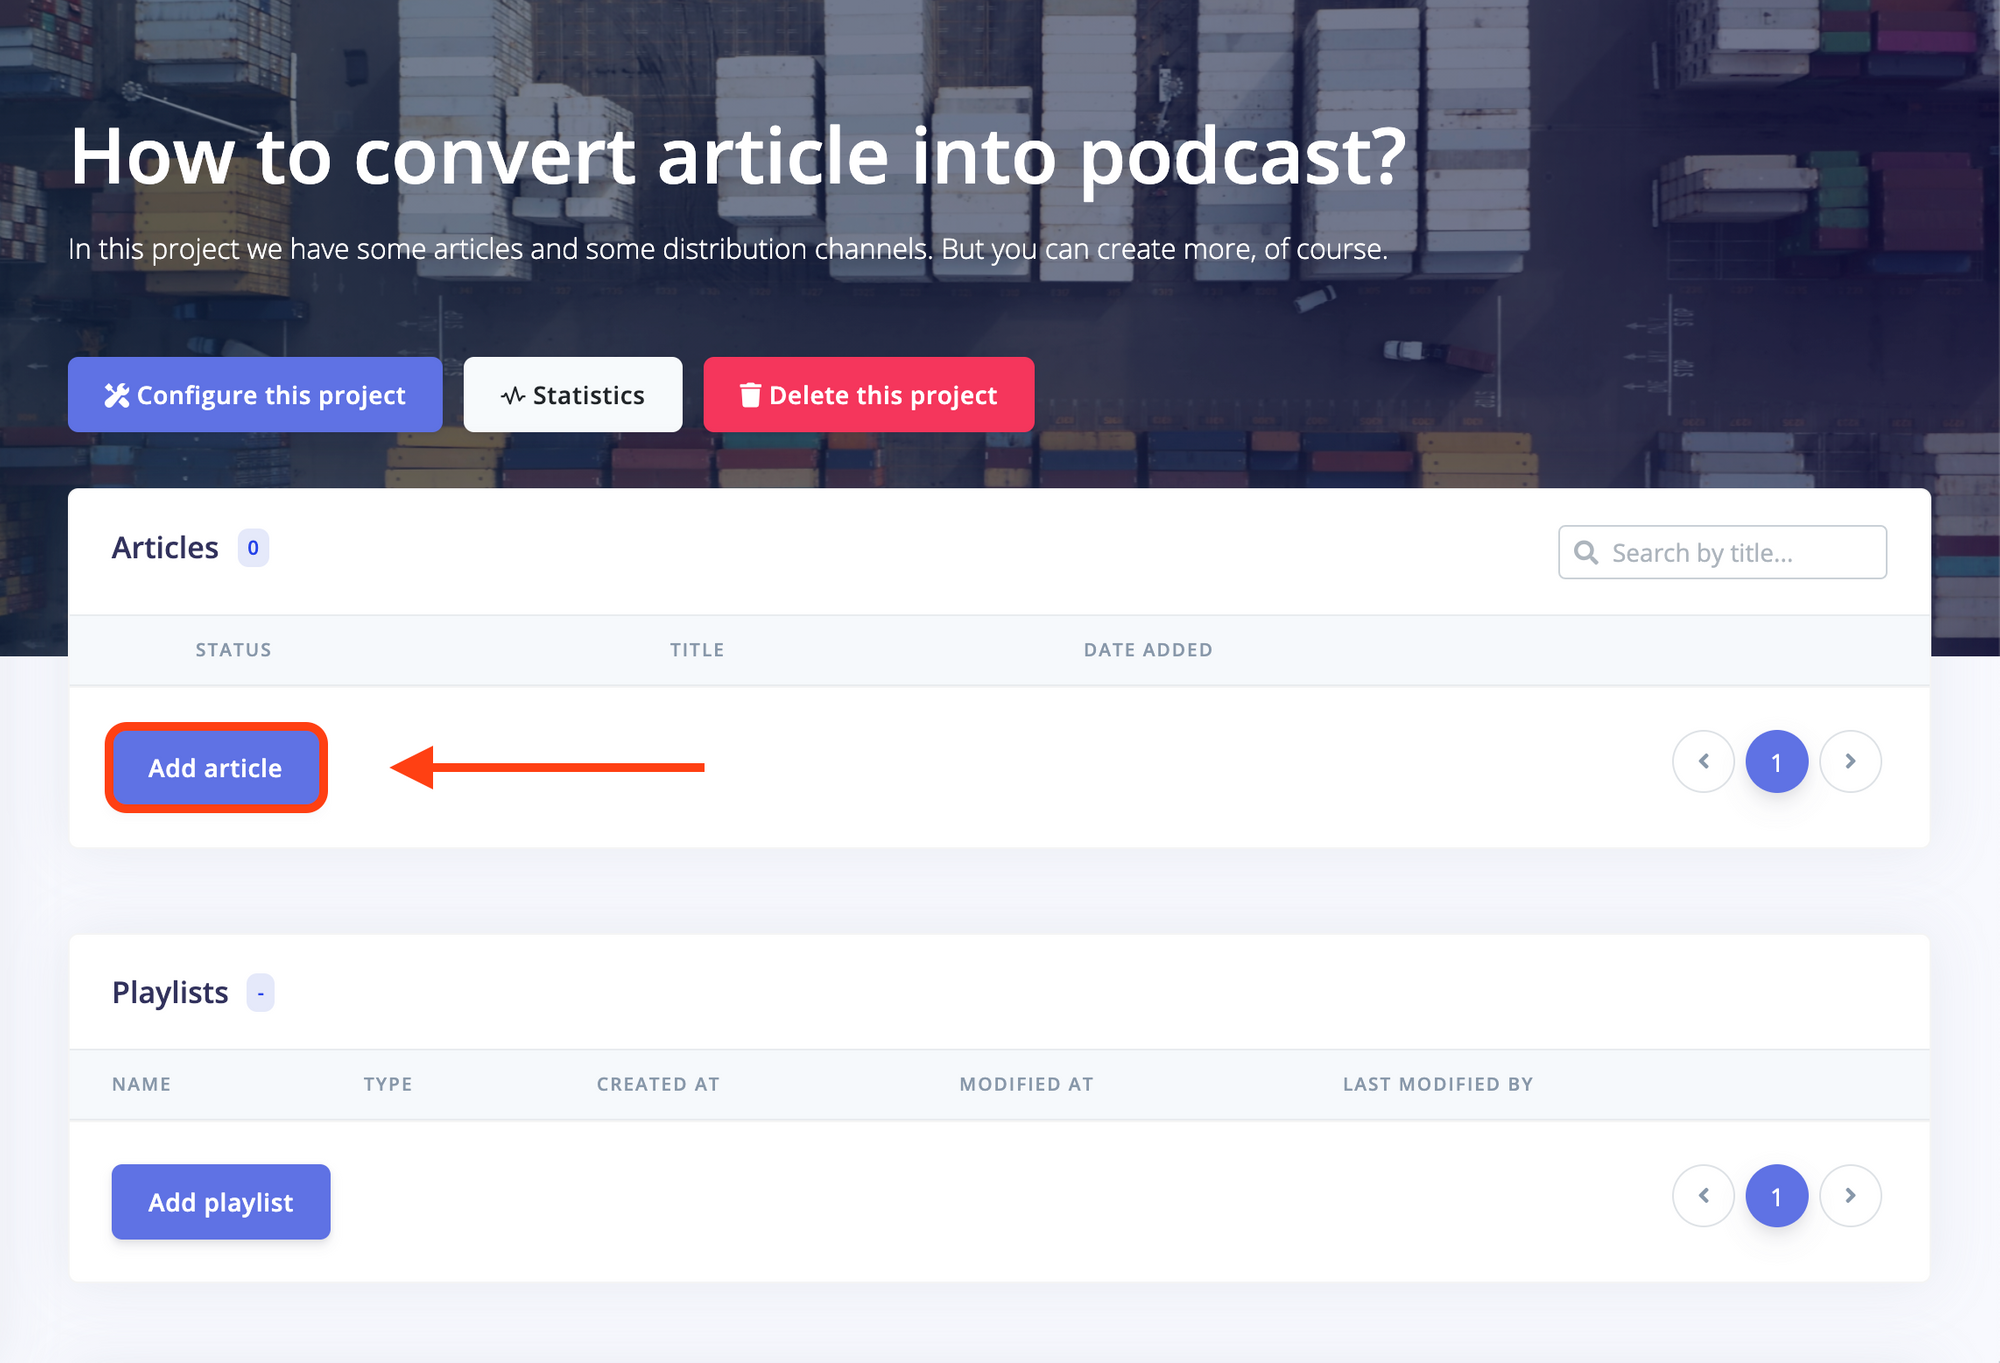 Project in BotTalk, you have project configurations, statistics and the lists with your articles/playlists